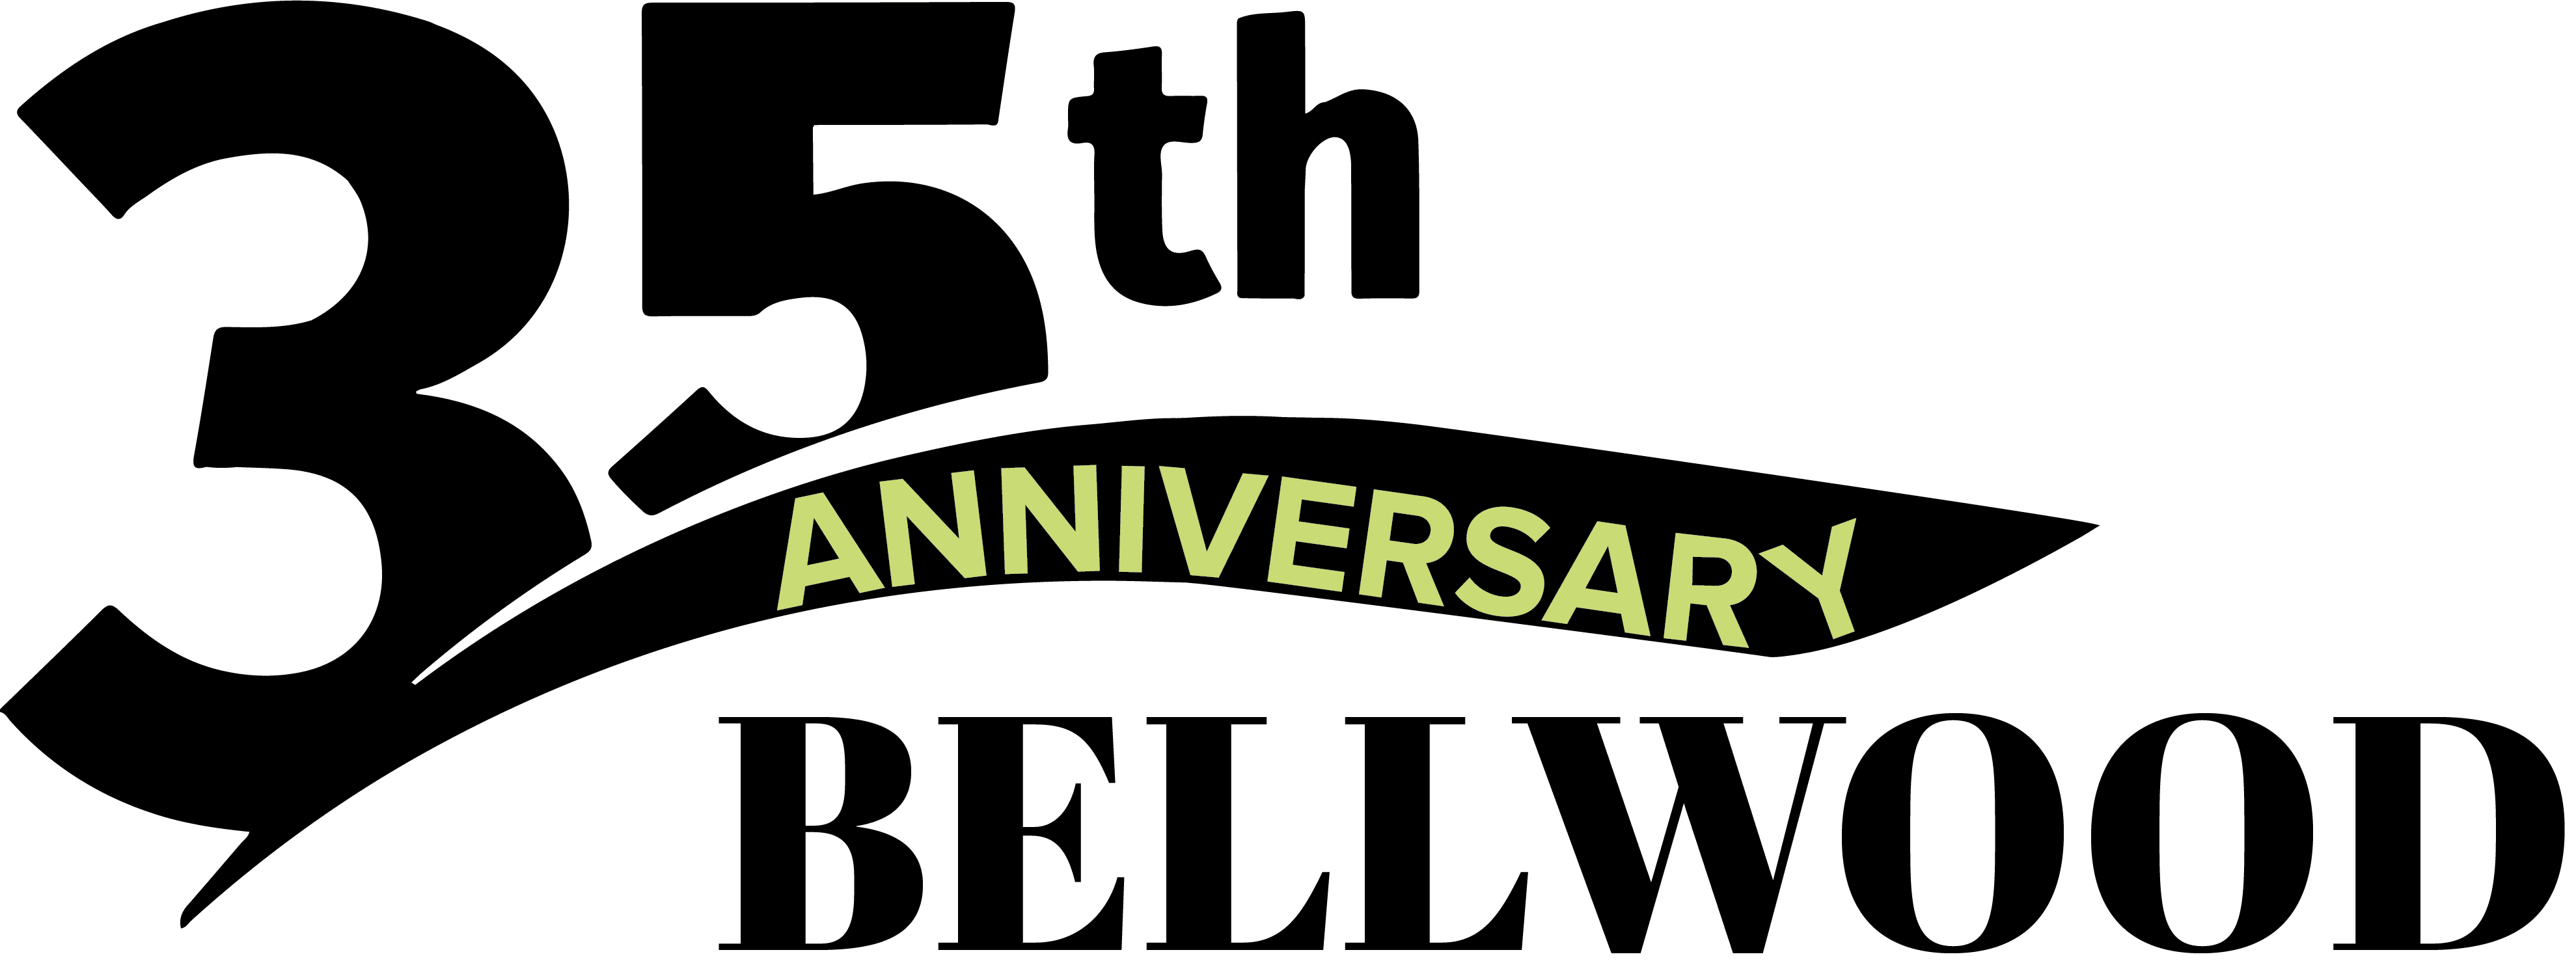 Bellwood Health Services 35th Anniversary Addiction Treatment Leader